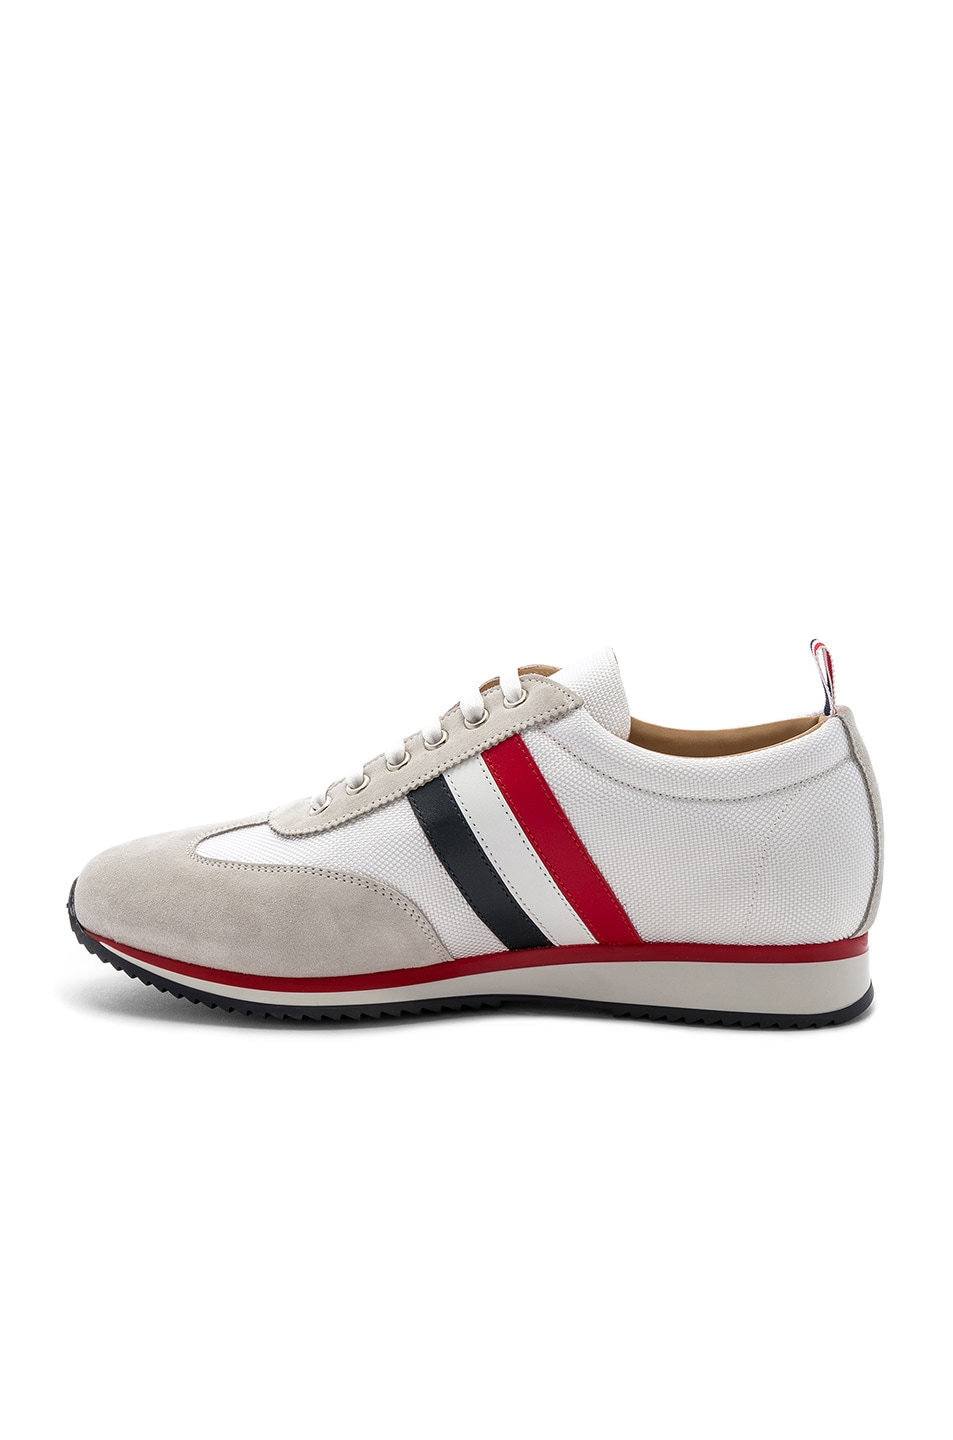 Image 5 of Thom Browne Running Shoe in White